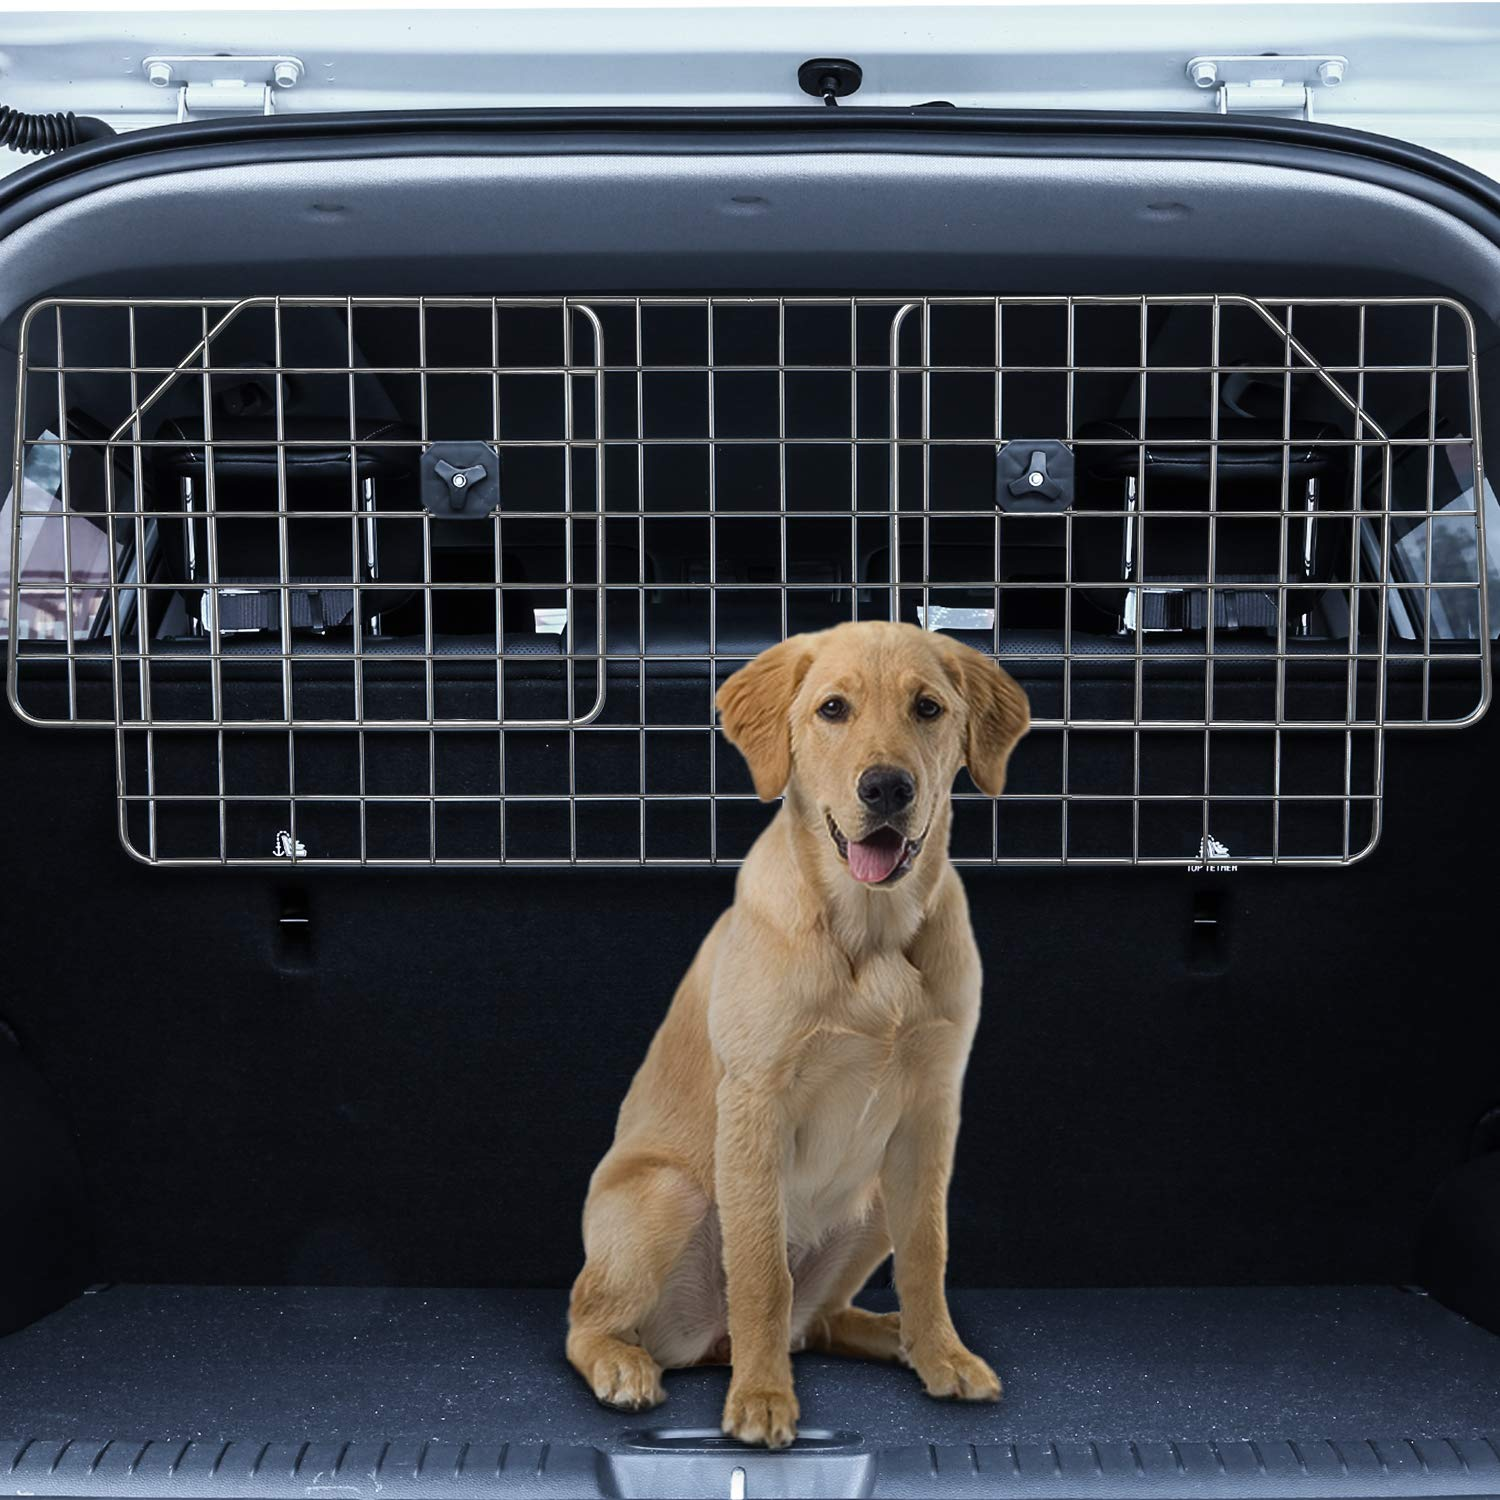 Sailnovo Dog Barrier for Car SUV Vehicles, Adjustable Pet Barrier Wire Mesh Dog Car Barrier for Cargo Area – Universal Fit